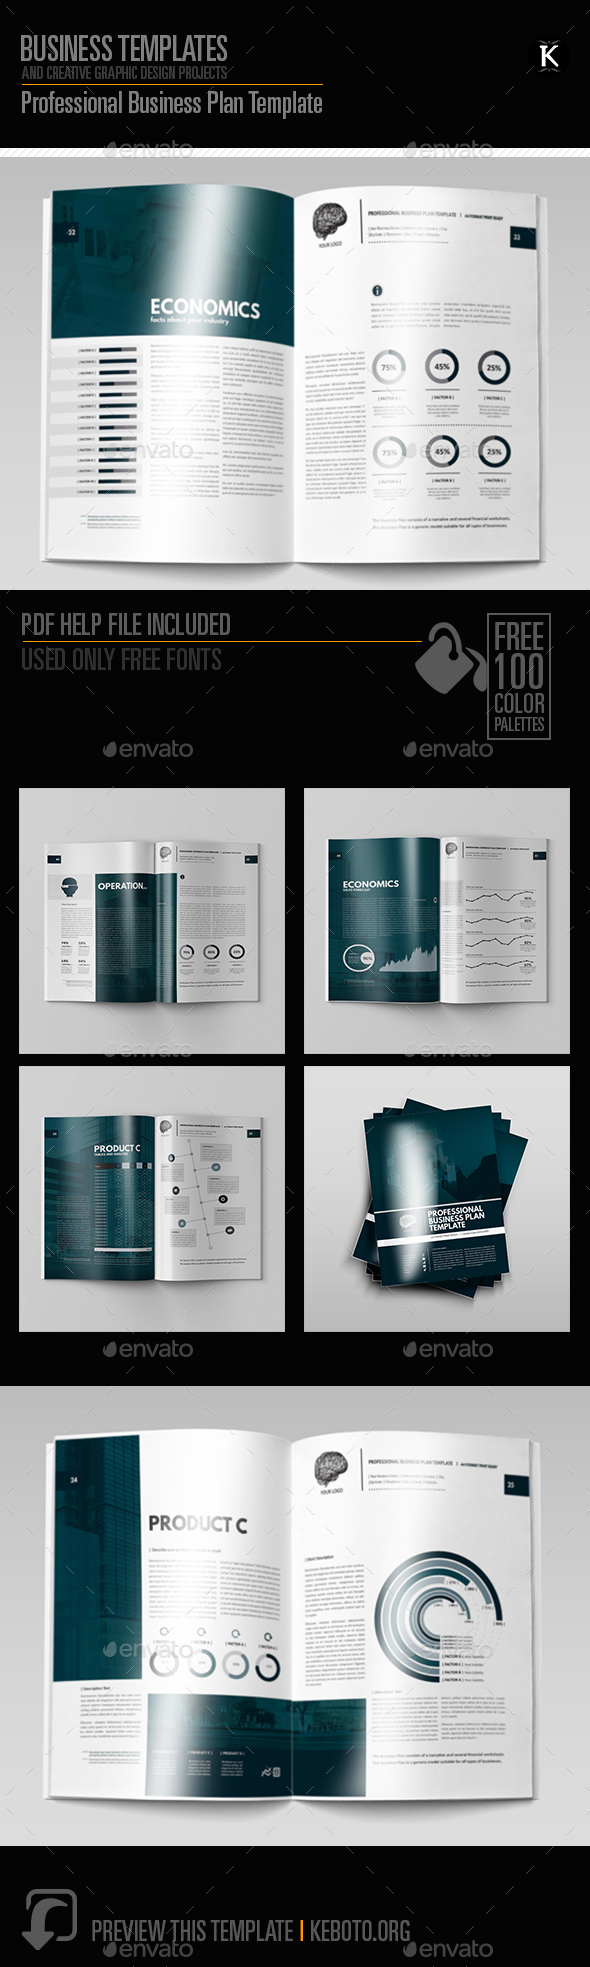 Professional business plan template by keboto graphicriver professional business plan template miscellaneous print templates wajeb Gallery